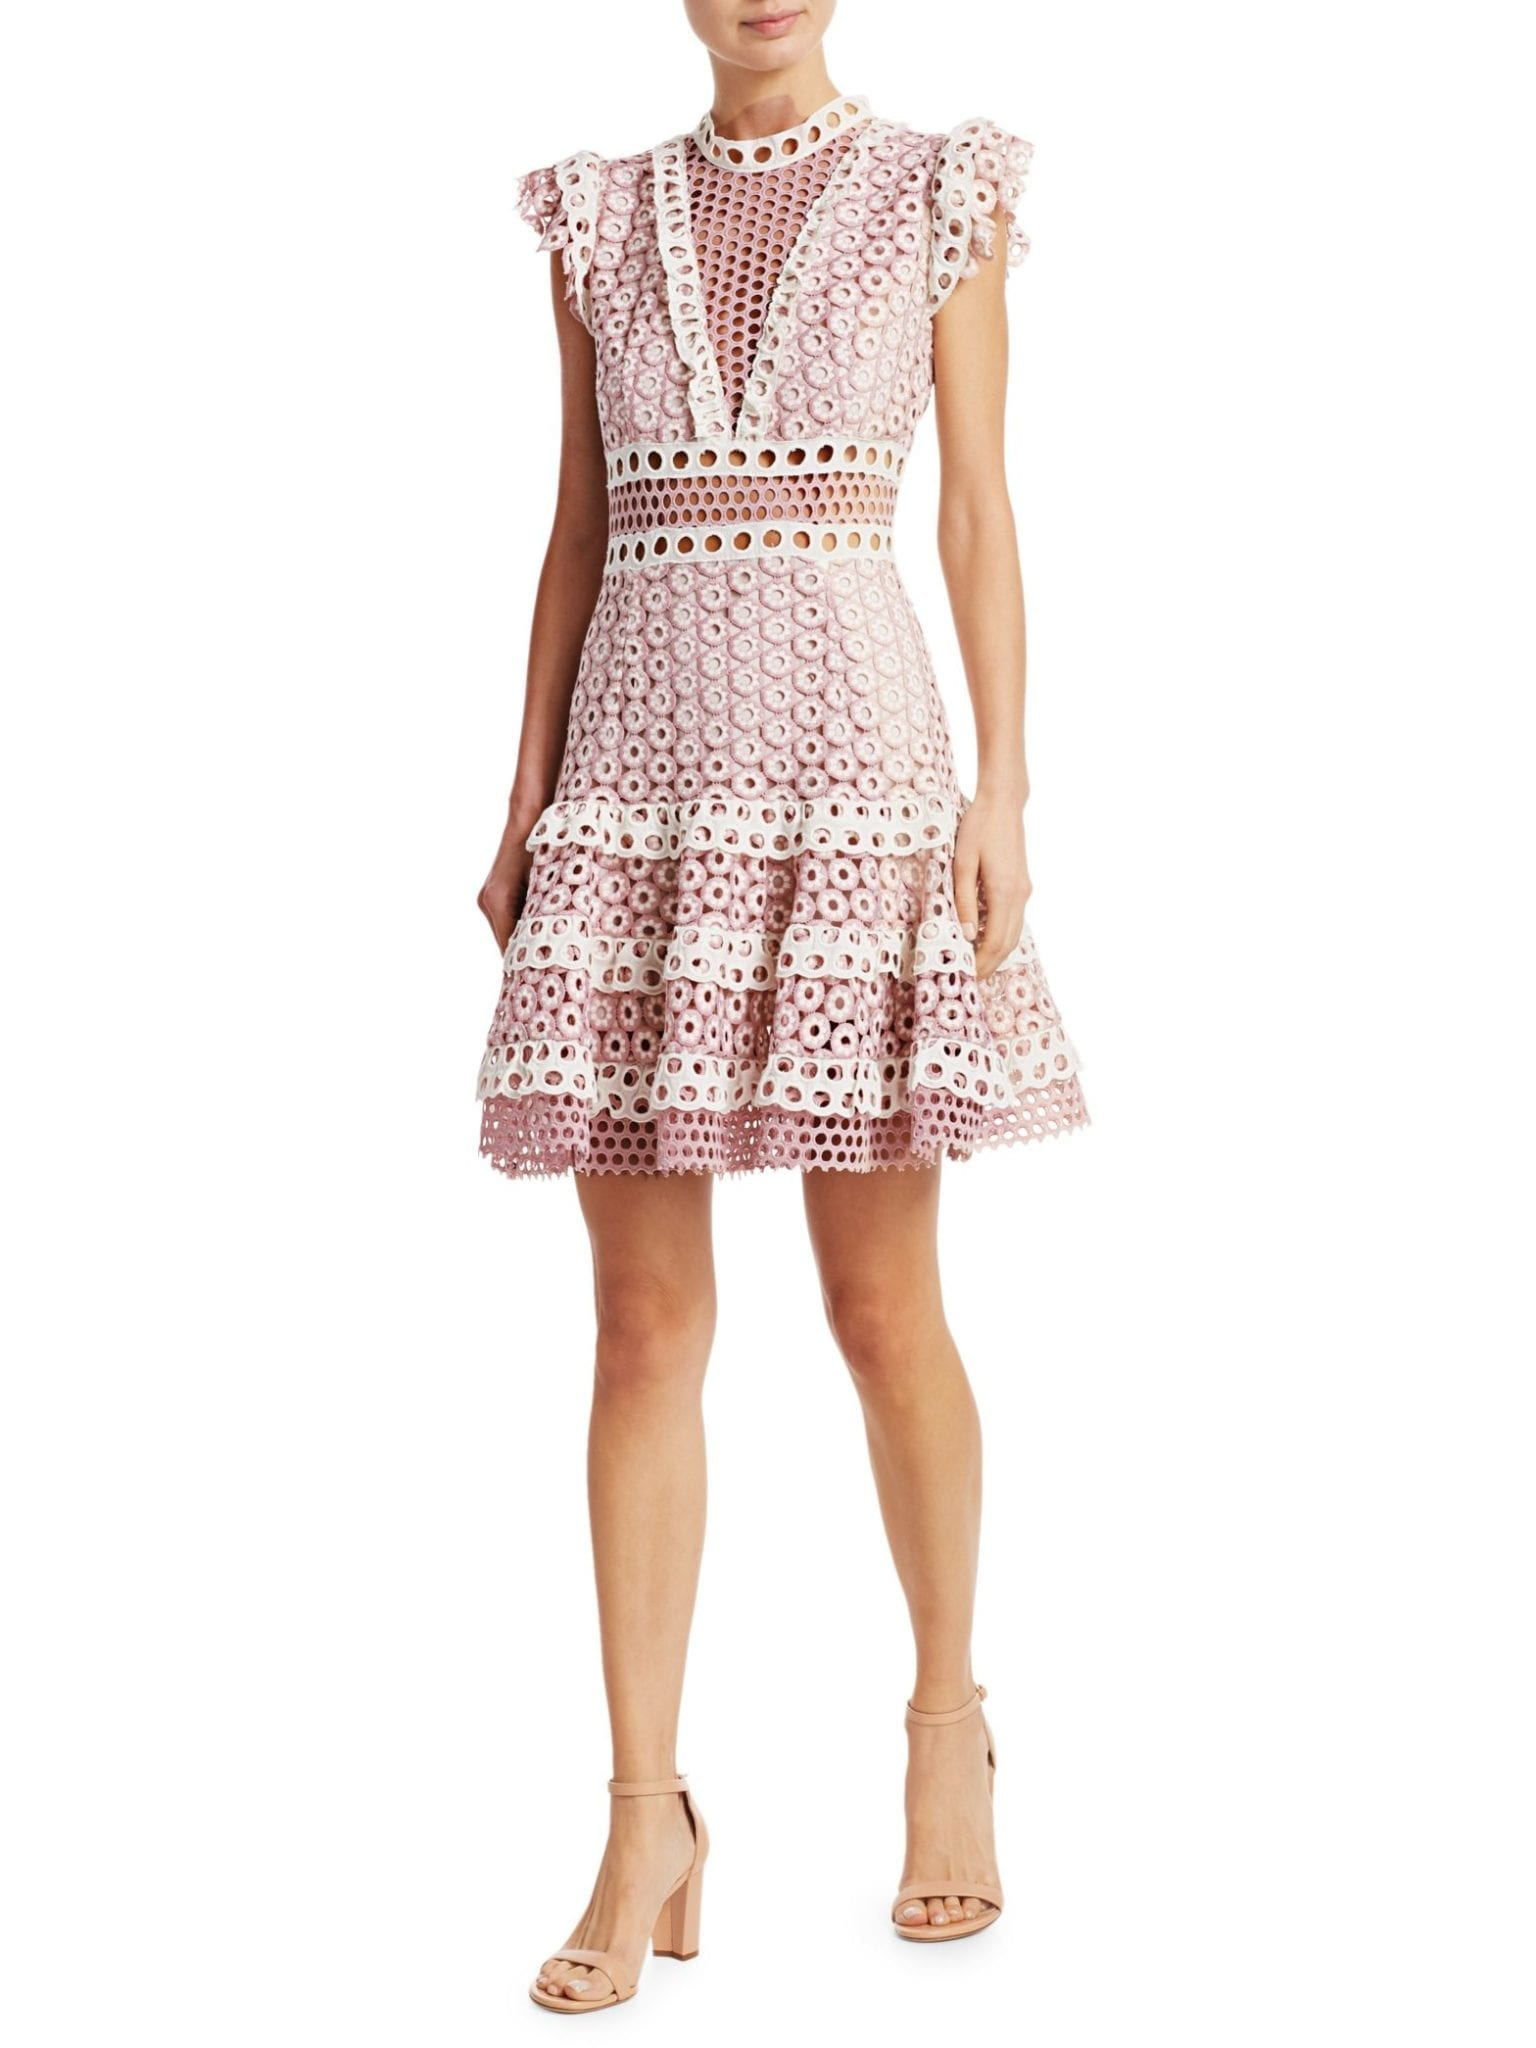 SEA Josie Crochet Lace Blush Dress